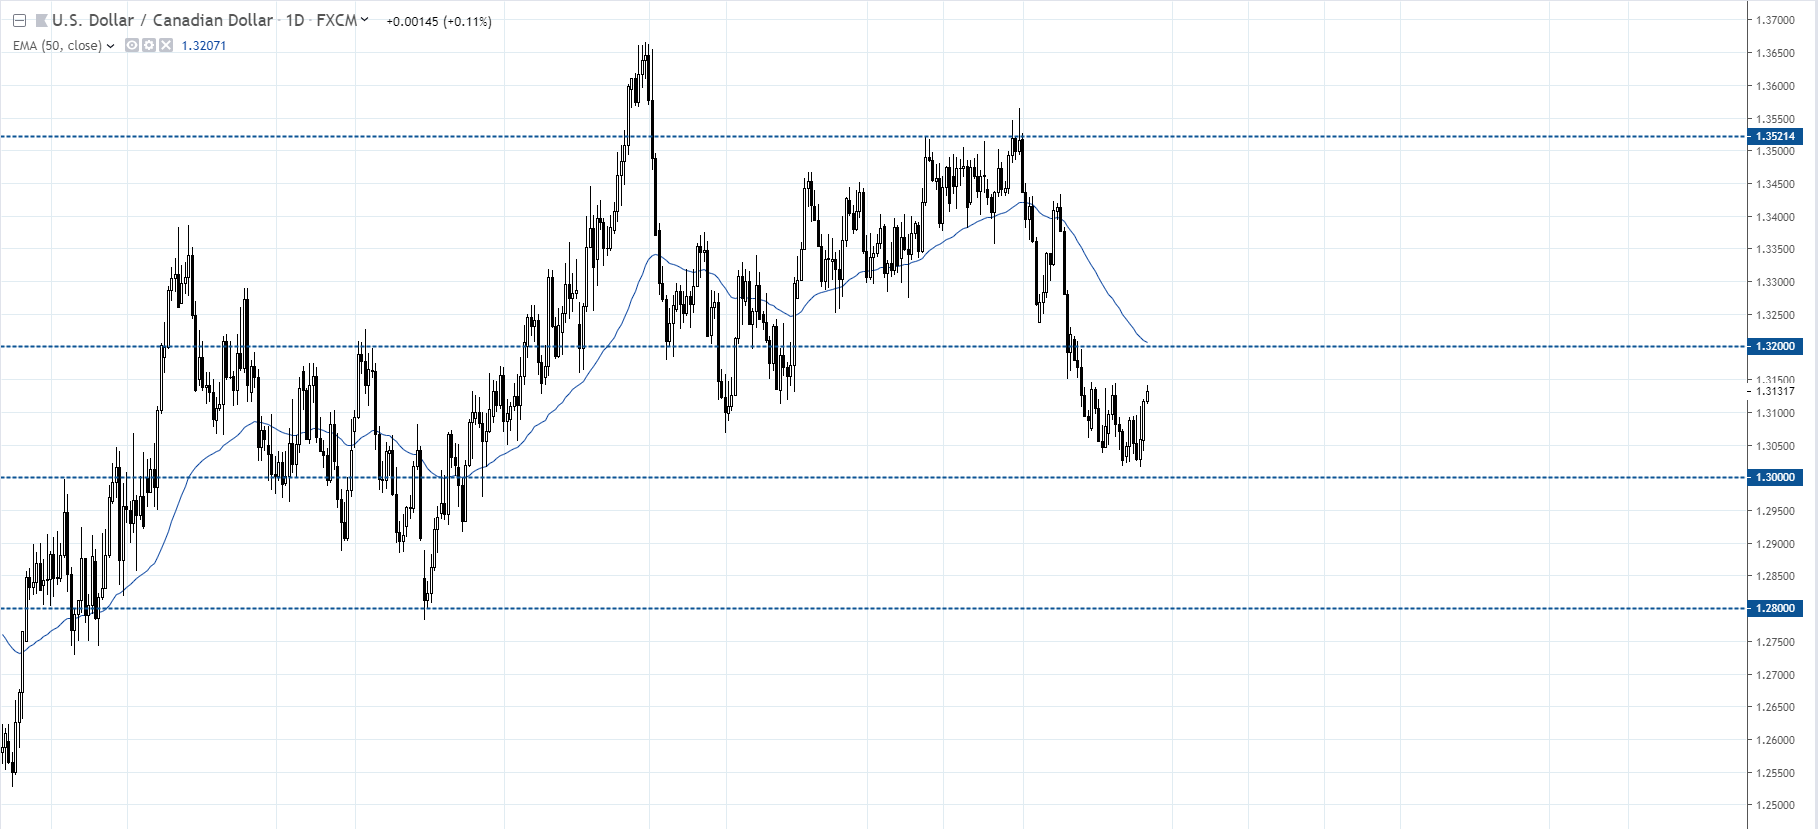 WYKRES USDCAD D1 23.07.2019